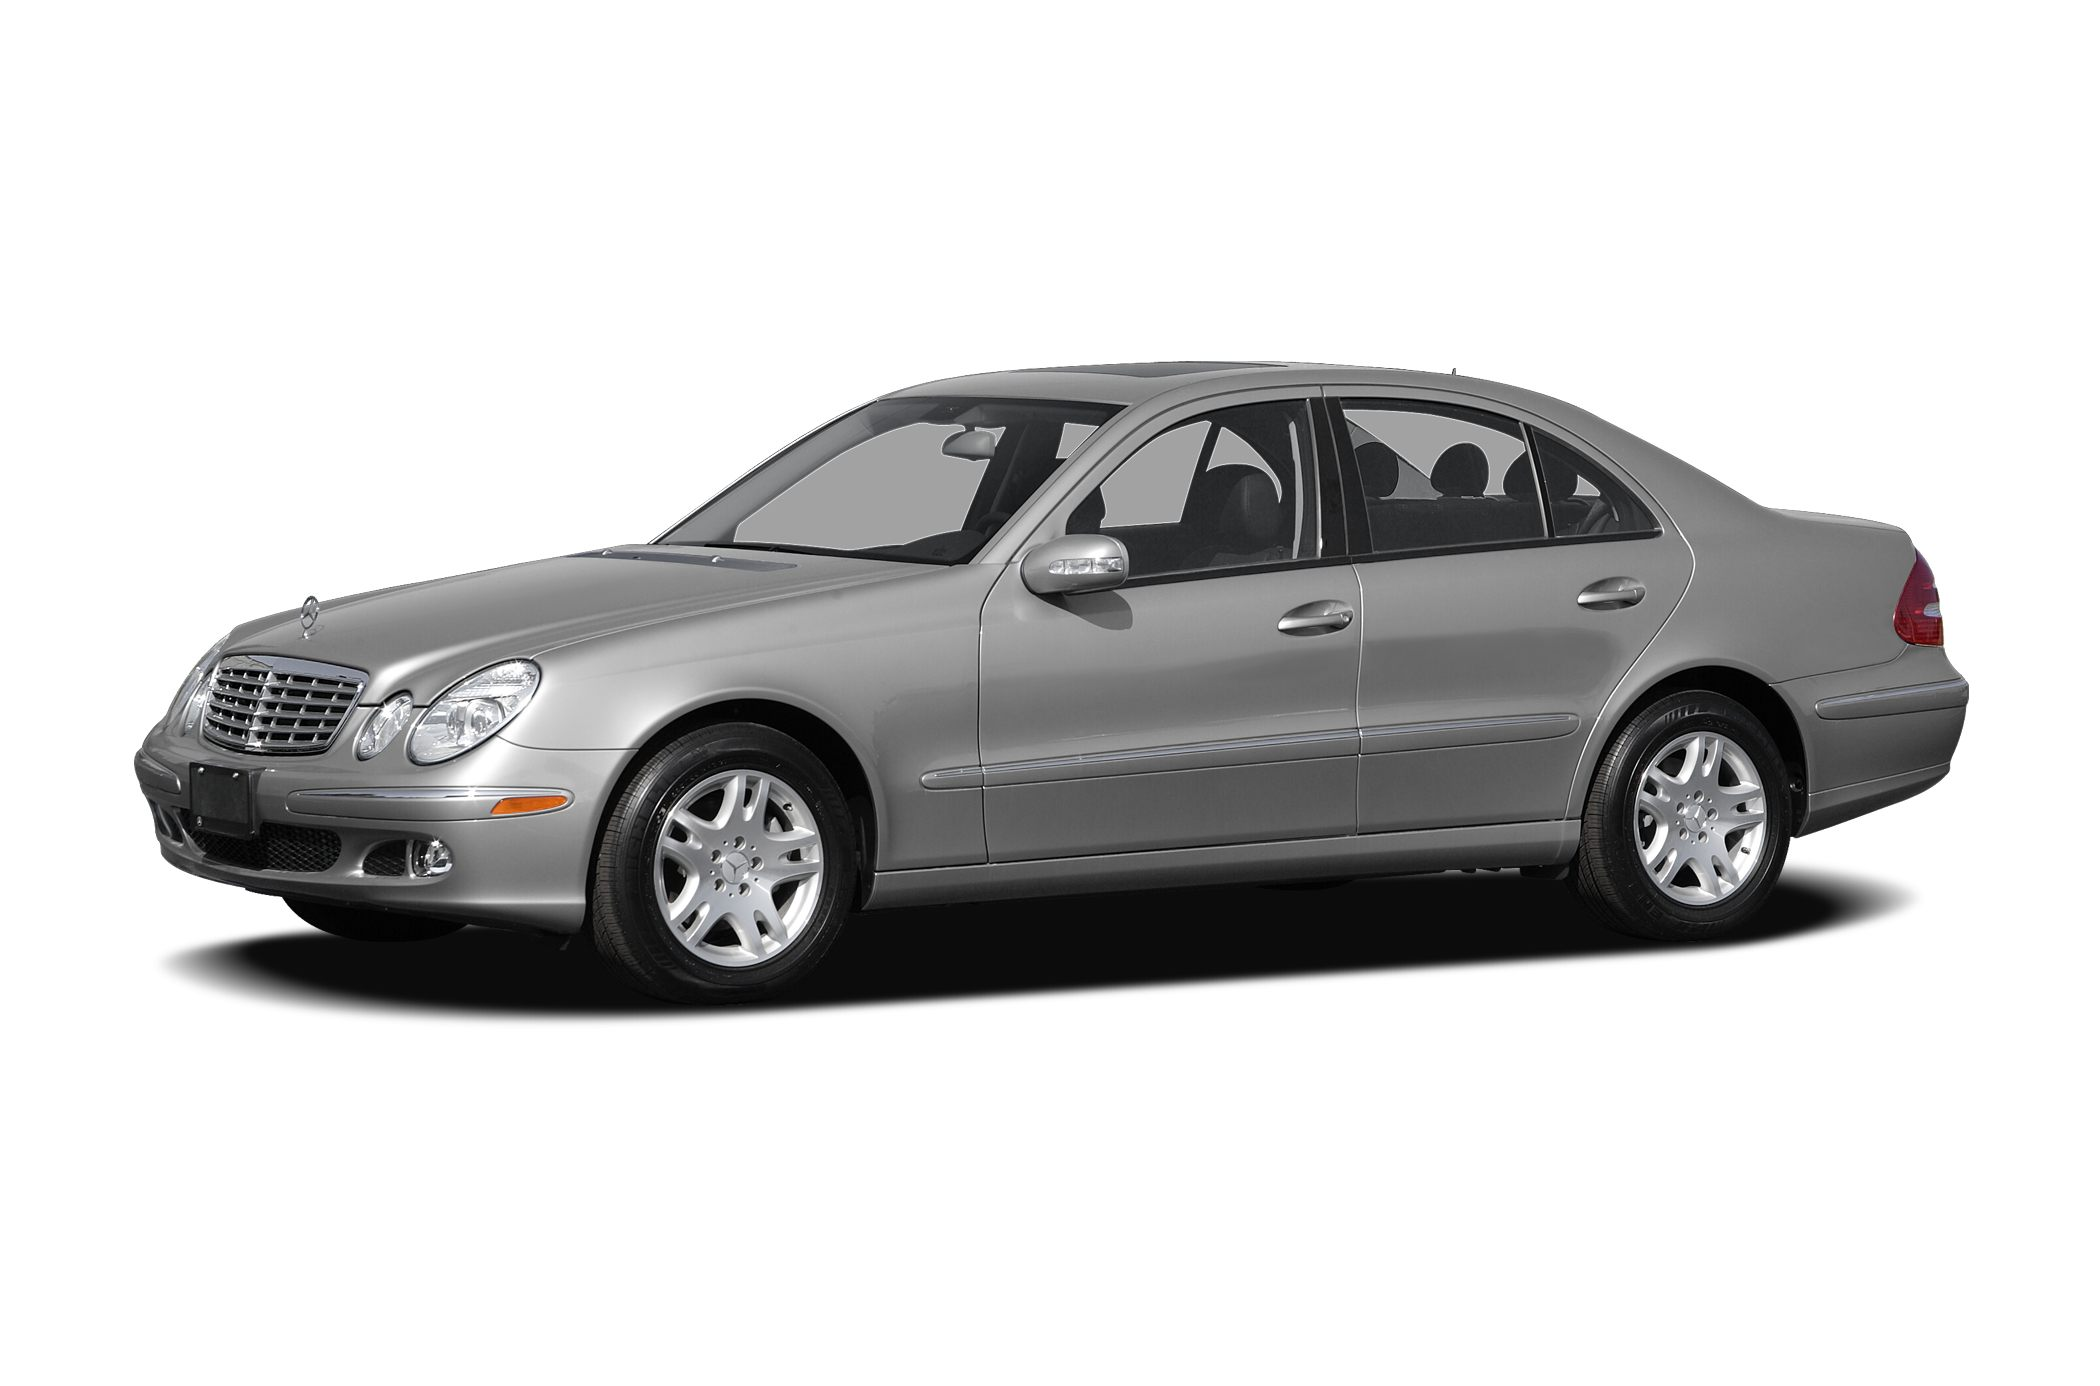 2006 Mercedes-Benz E-Class E350 4MATIC Sedan for sale in Elmwood Park for $11,995 with 98,178 miles